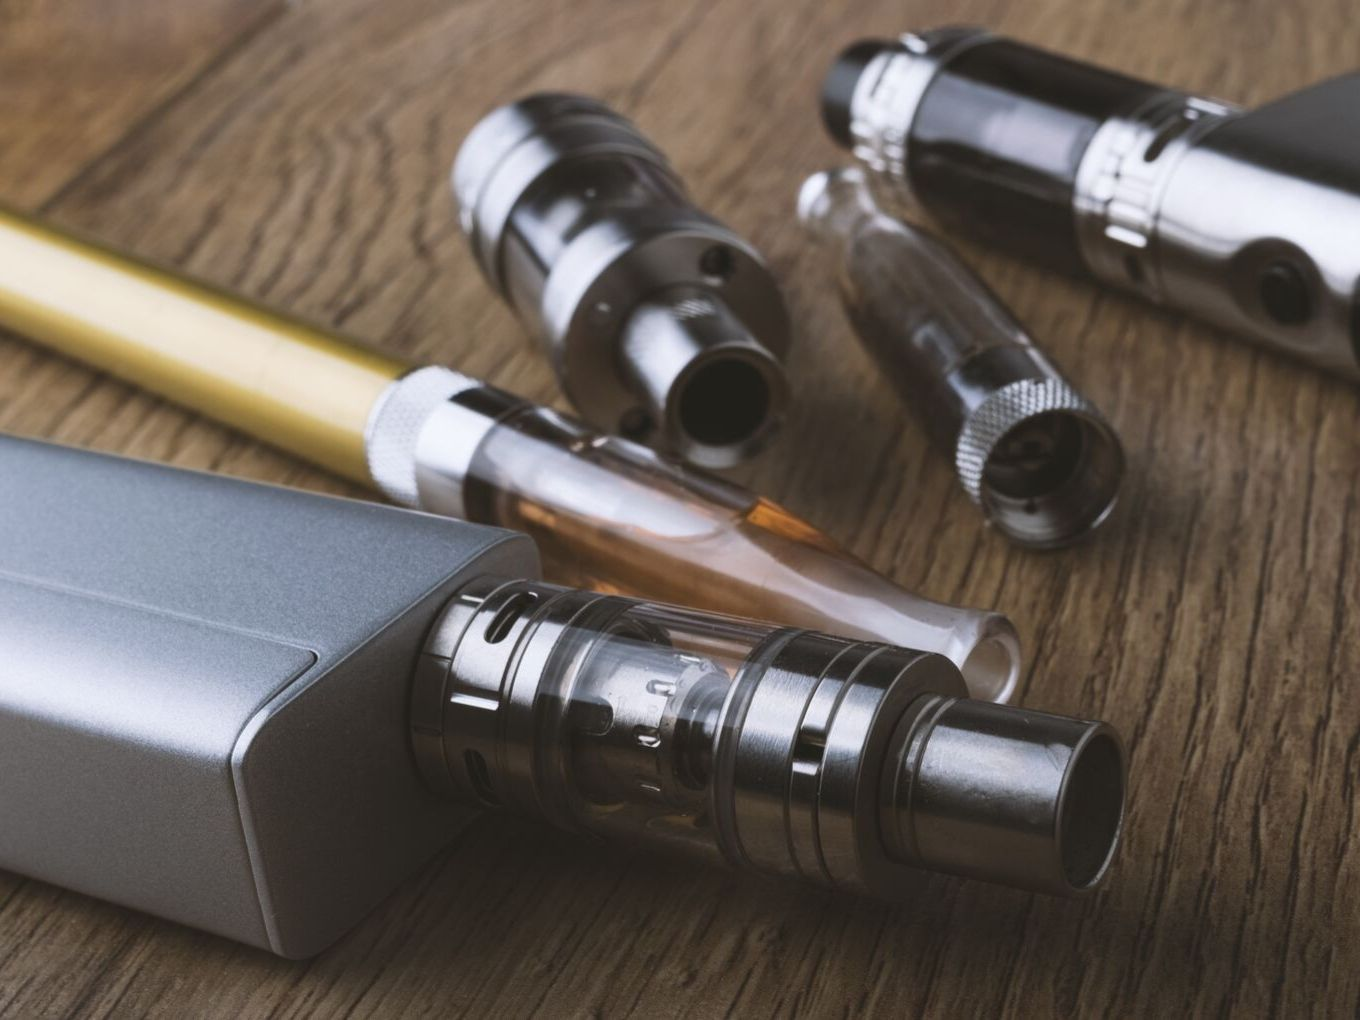 Indian Government Faces First Legal Challenge To Its Ecigarette Ban